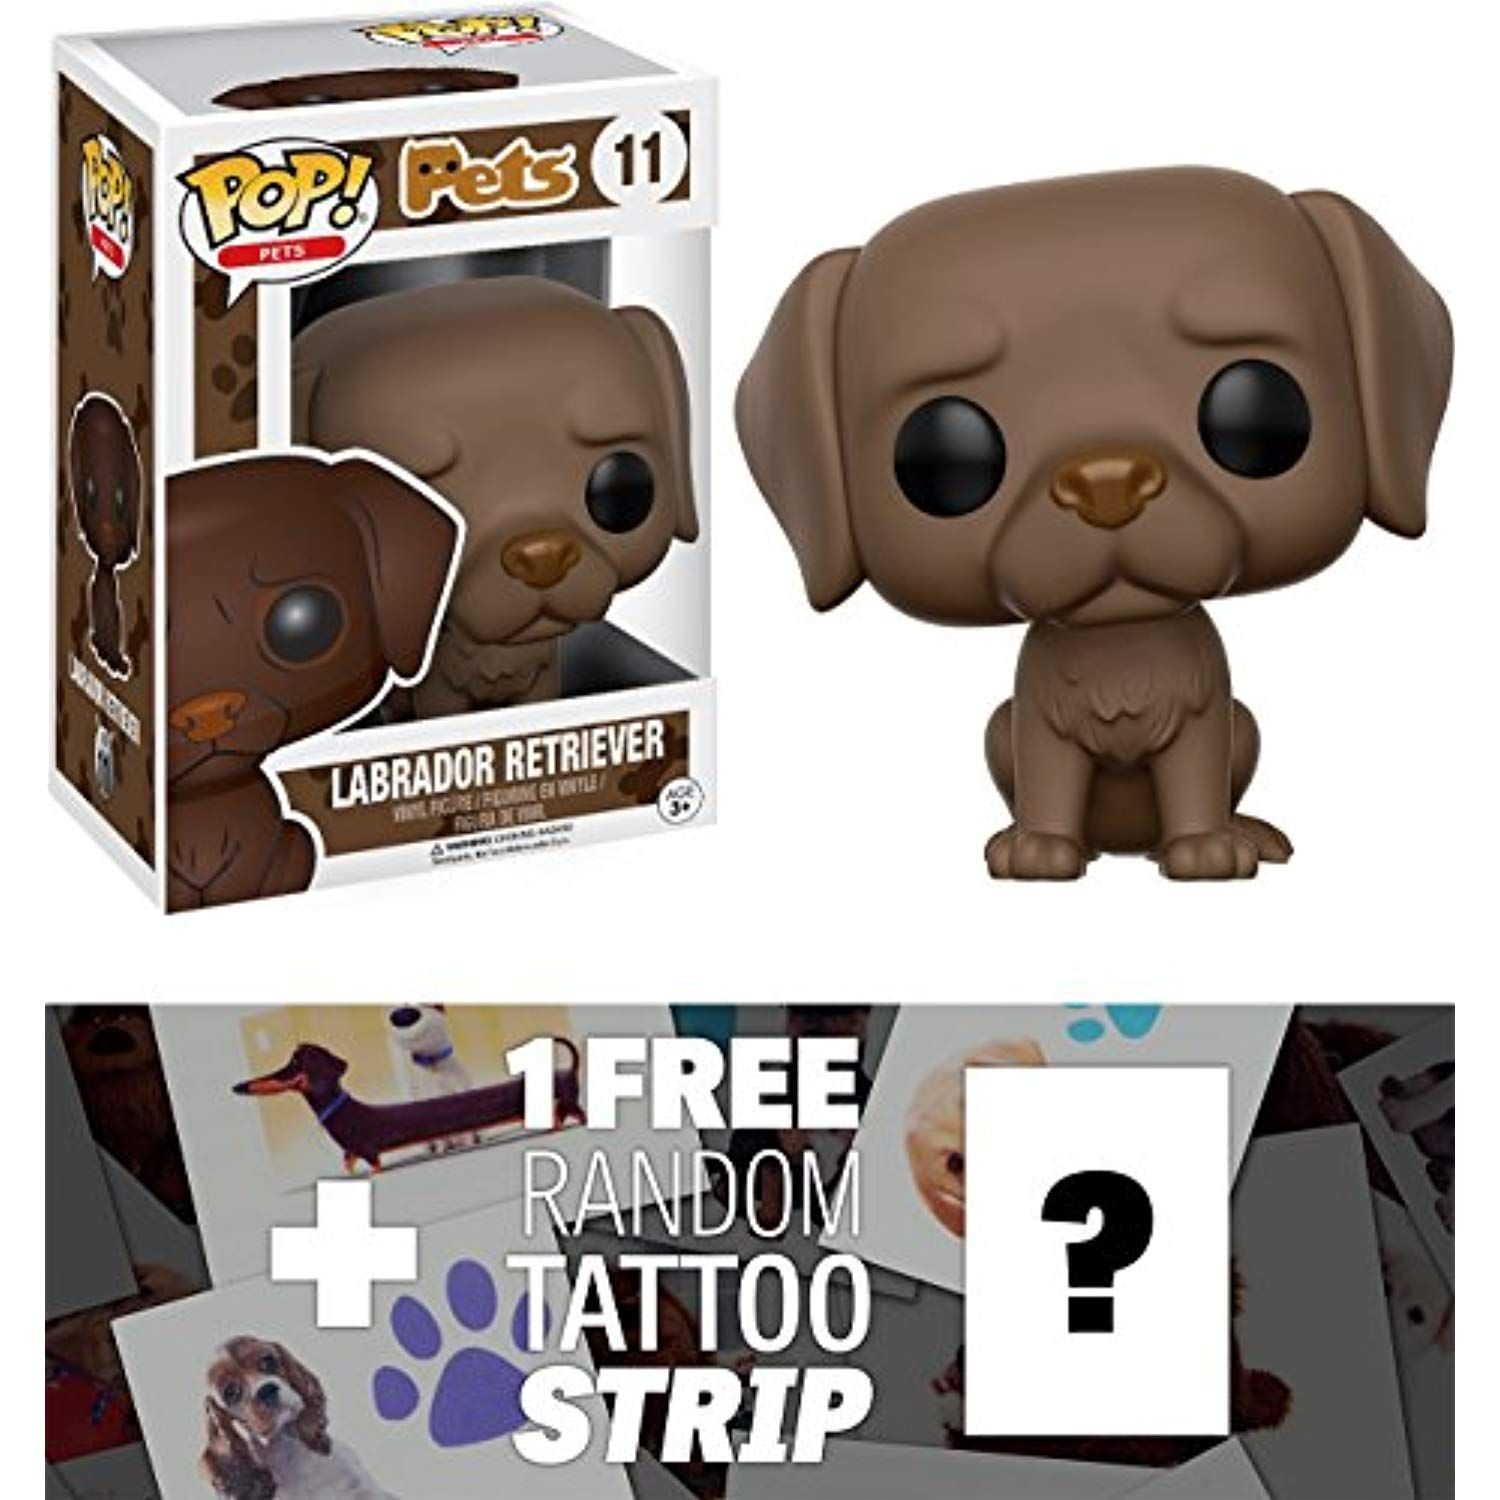 Labrador Retriever Chocolate Funko Pop Pets Vinyl Figure 1 Free Pet Themed Tattoo Strip Bundle 112567 F Labrador Retriever Vinyl Figures Animal Free